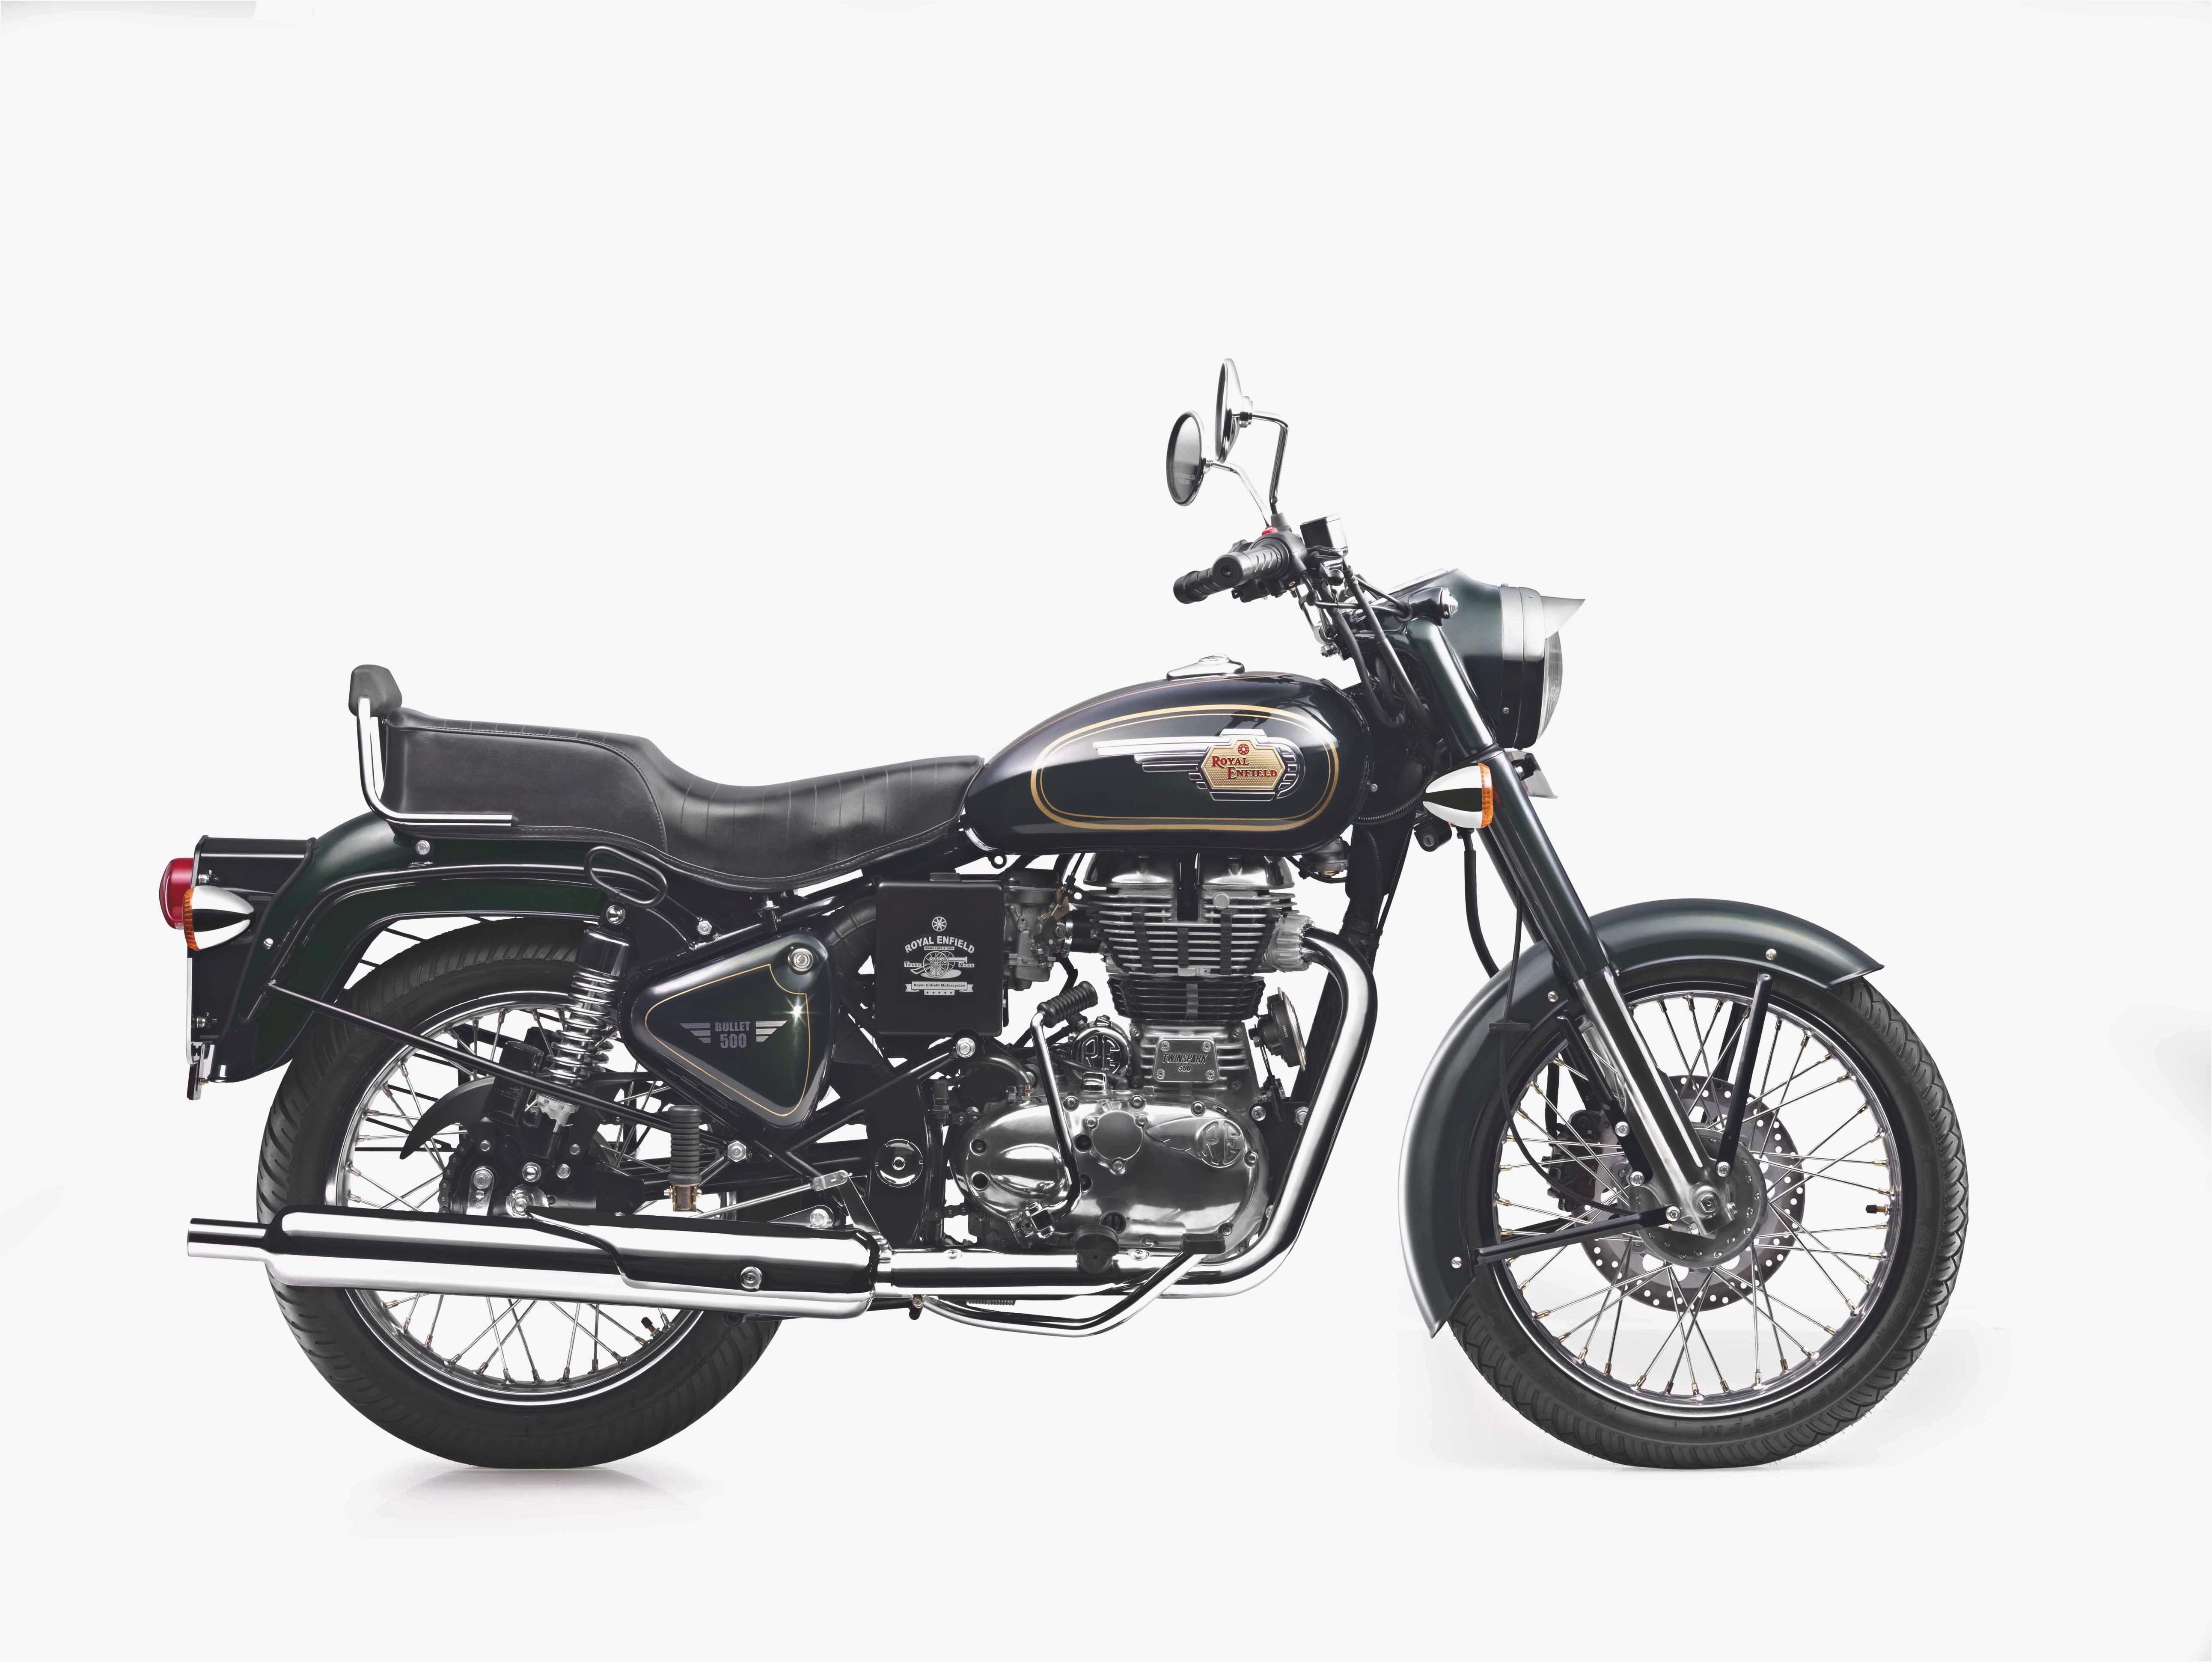 Royal Enfield Bullet 500 Army images #123260